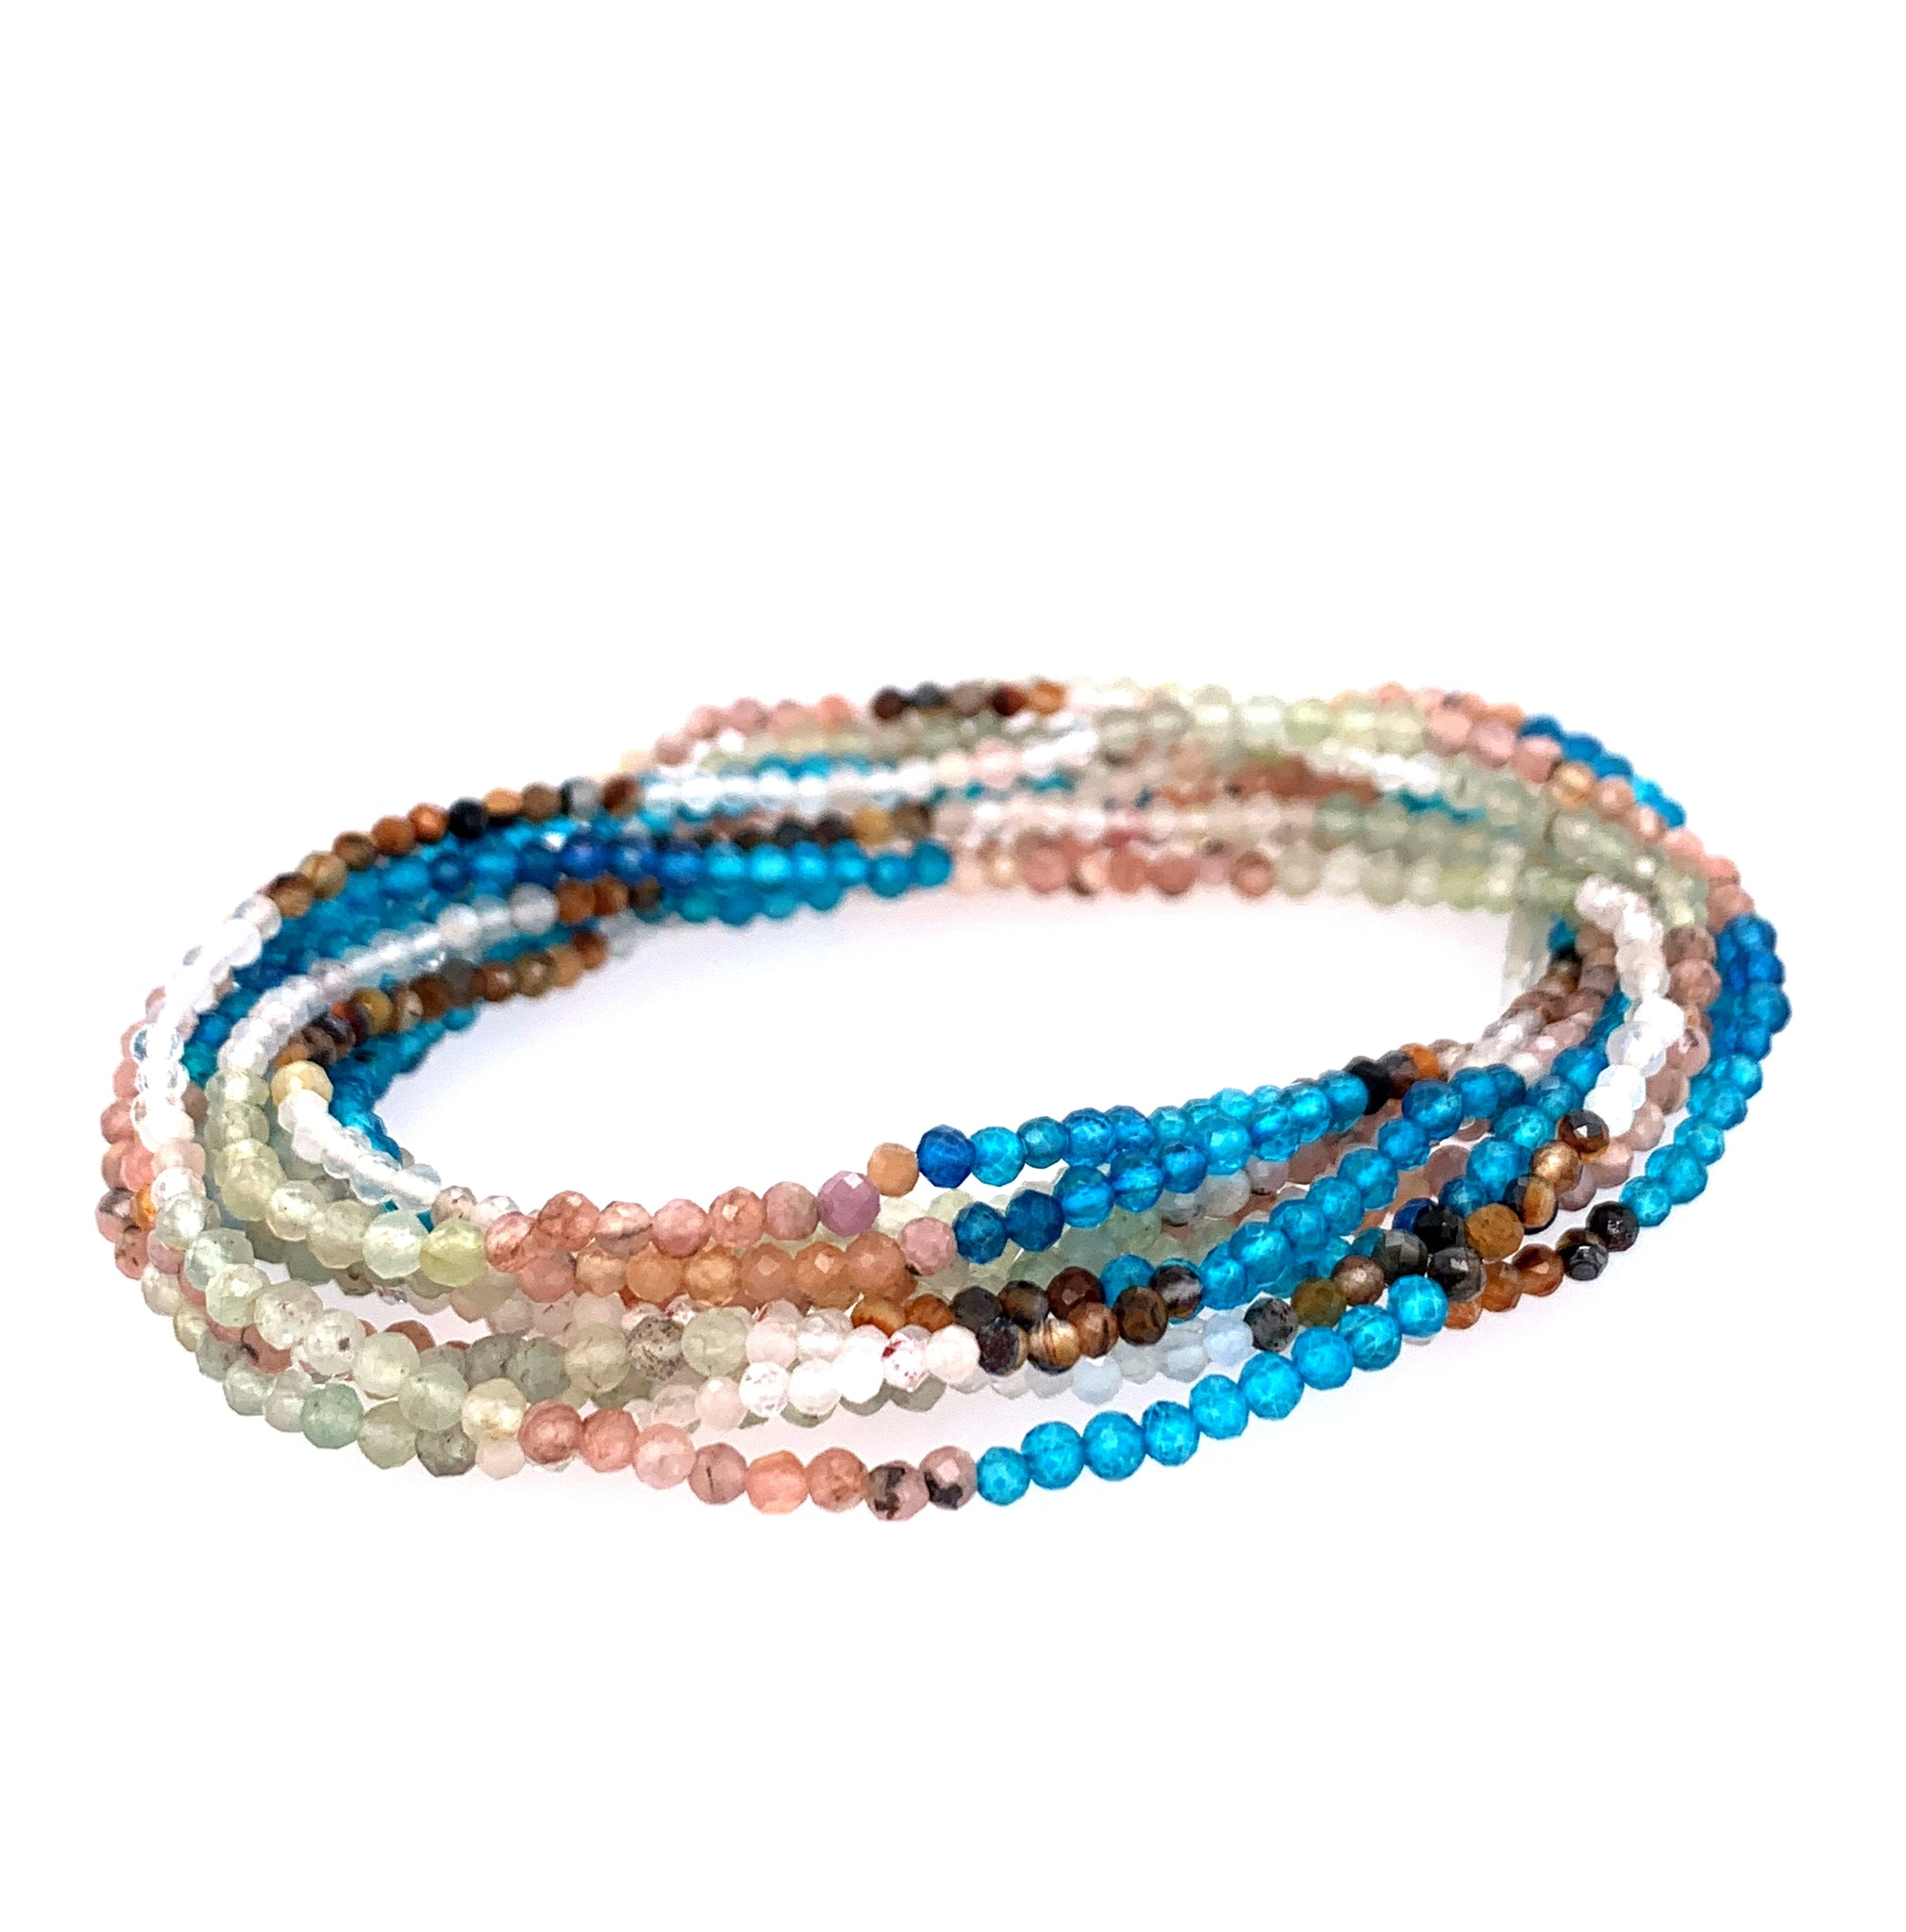 "Moonstone & Apatite Aztec Faceted 68"" Long Infinity Necklace"